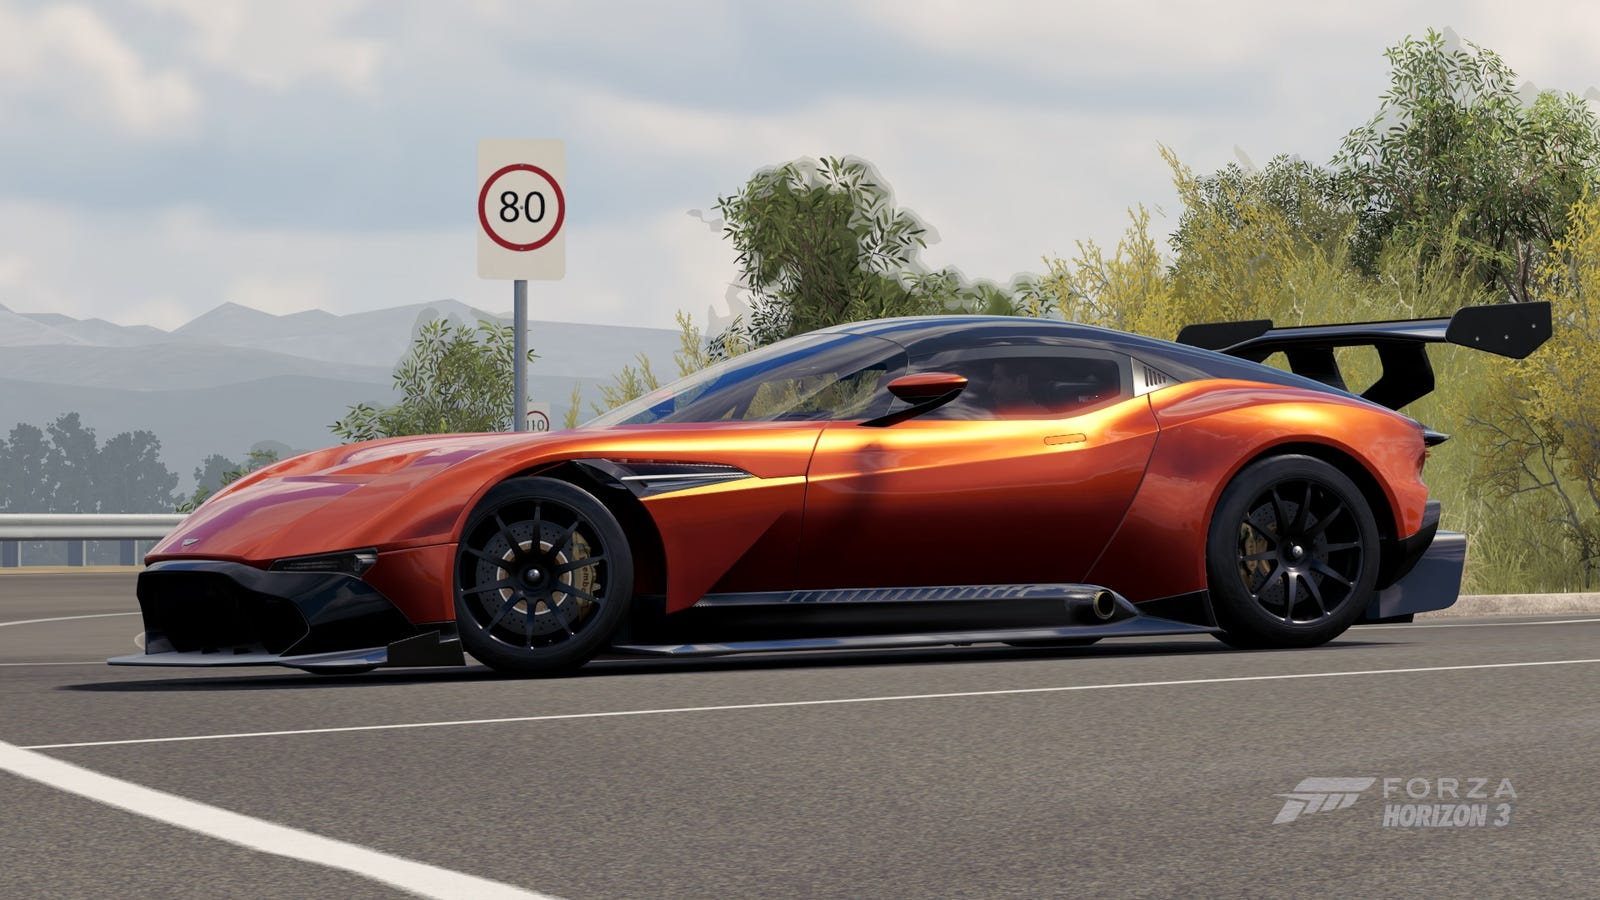 Aston Martin Vulcan: The Horizon 3 Review